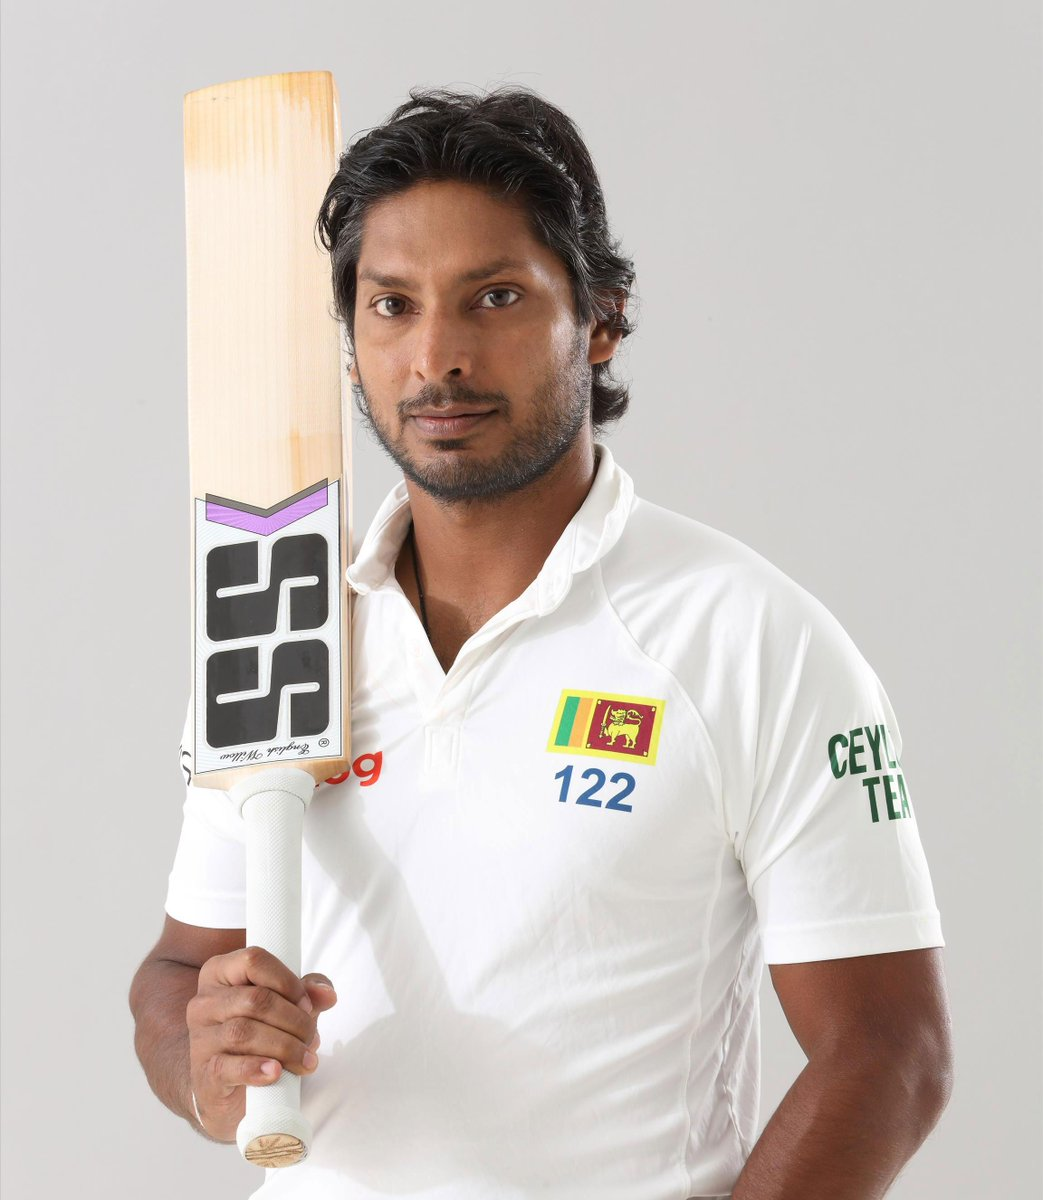 New scholarship for Sri Lankan students marked by a sponsorship with Sri Lanka cricket great: http://t.co/HXcIvuLSIl http://t.co/4D9sYiRz6j